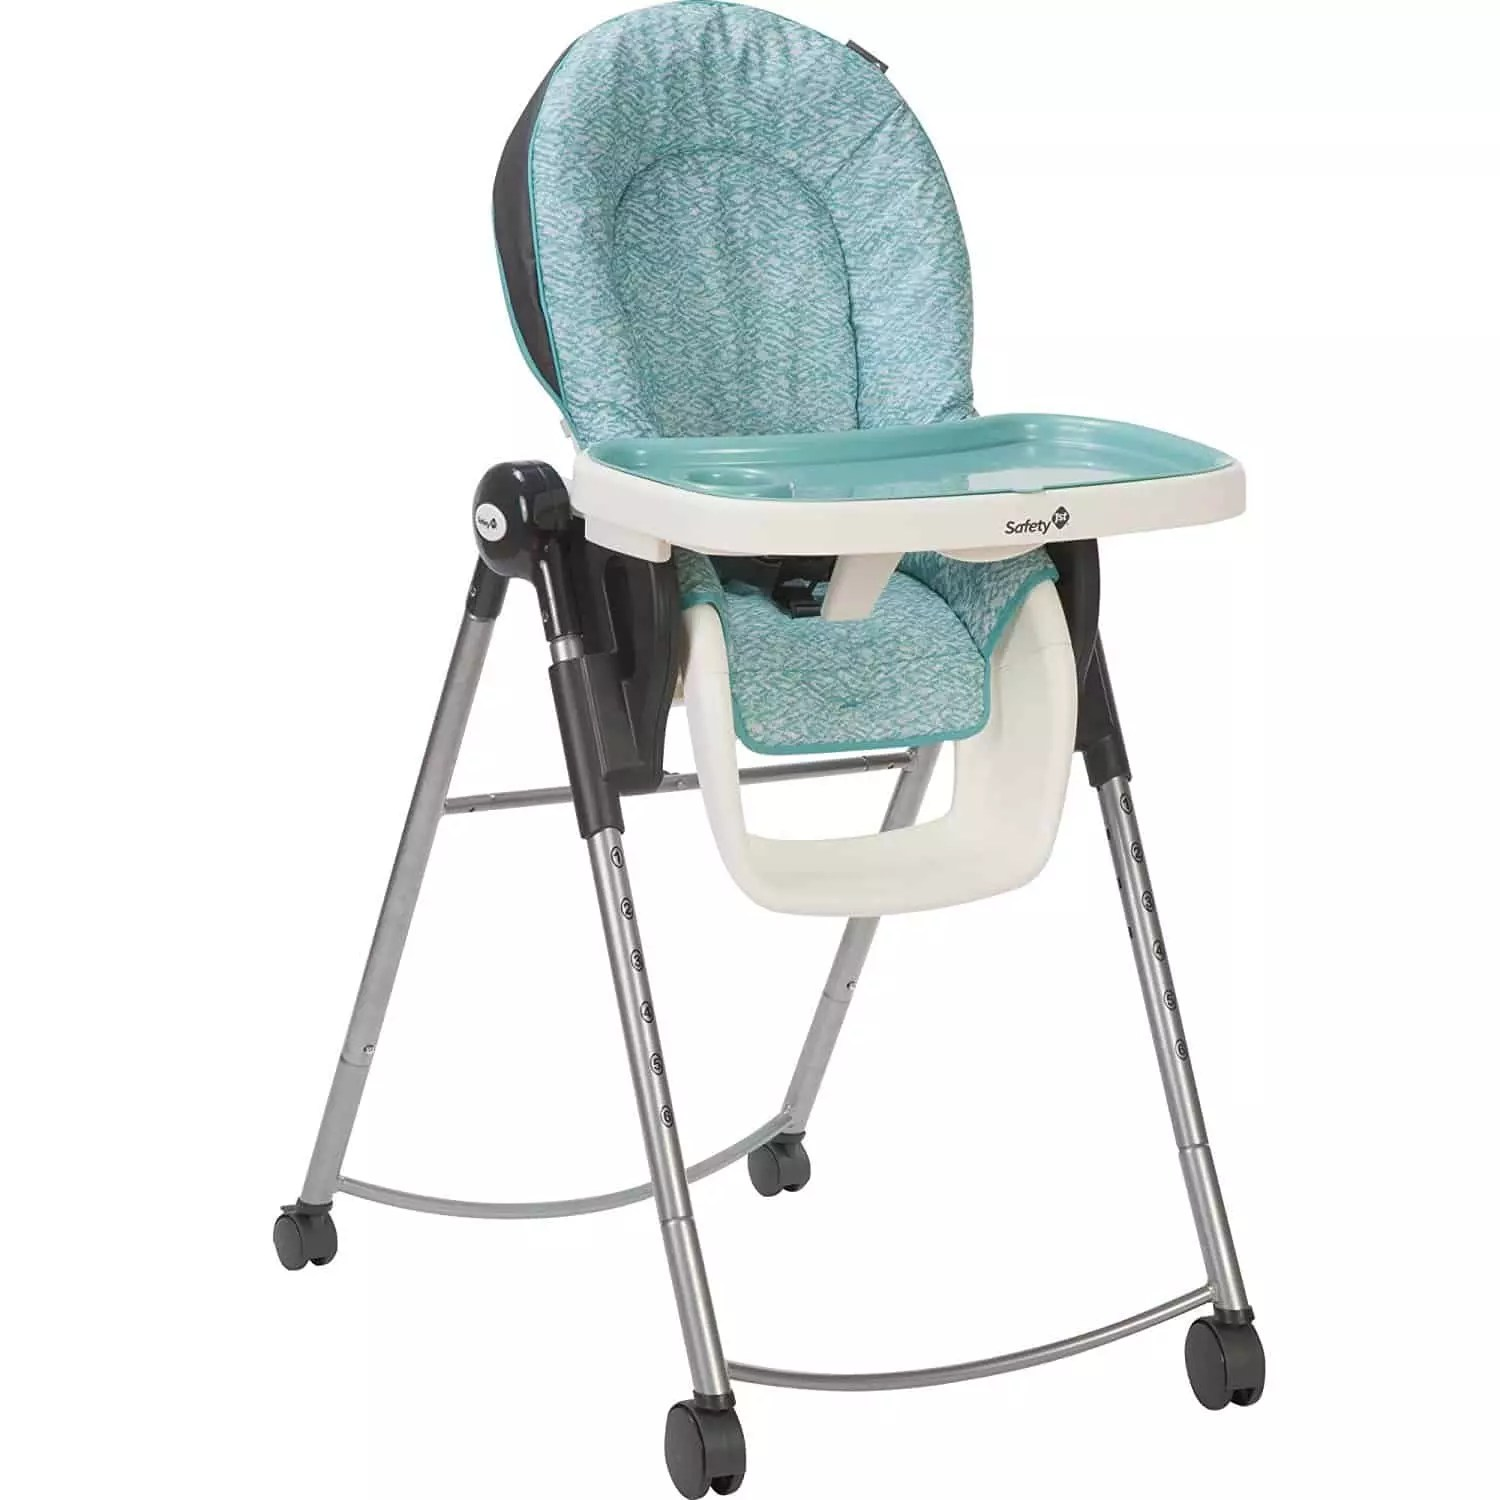 Cheap Baby High Chair High Chair Brand Review Safety 1st High Chairs Baby